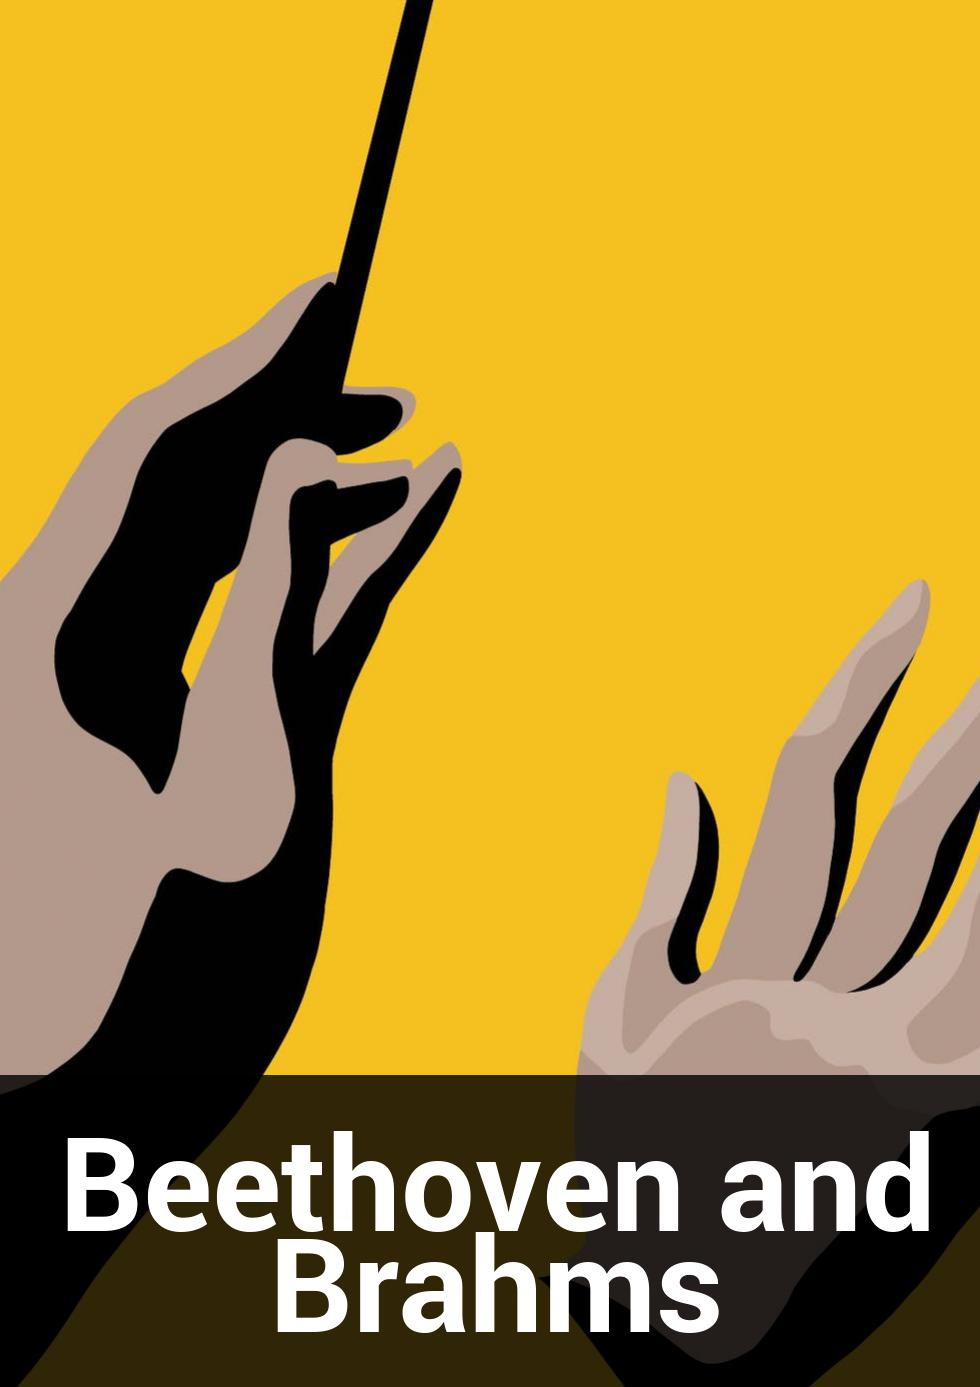 Beethoven and Brahms at Perth Concert Hall